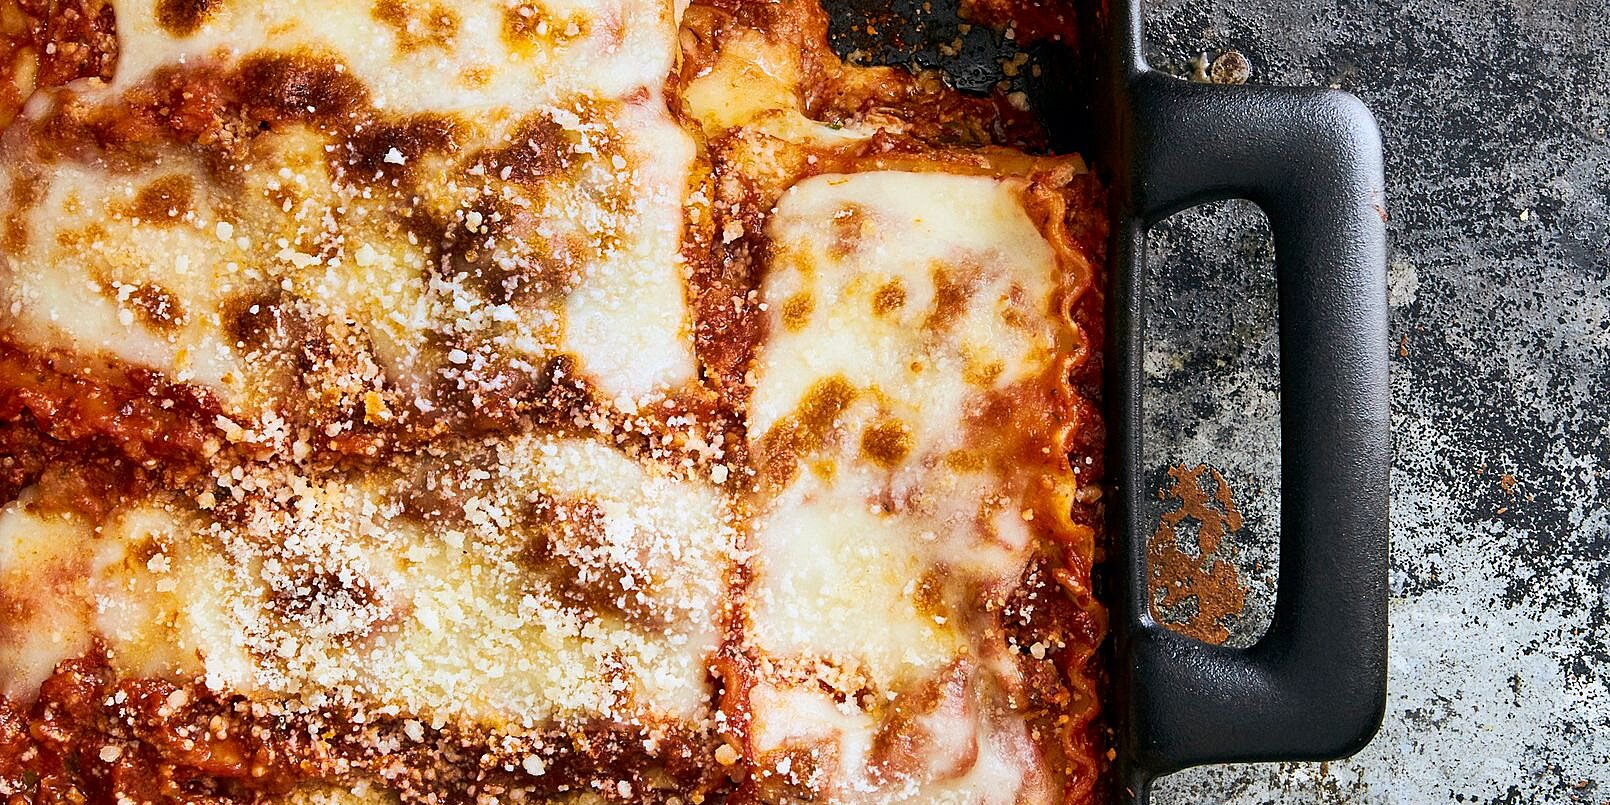 99 Recipes You'll Want to Make Forever